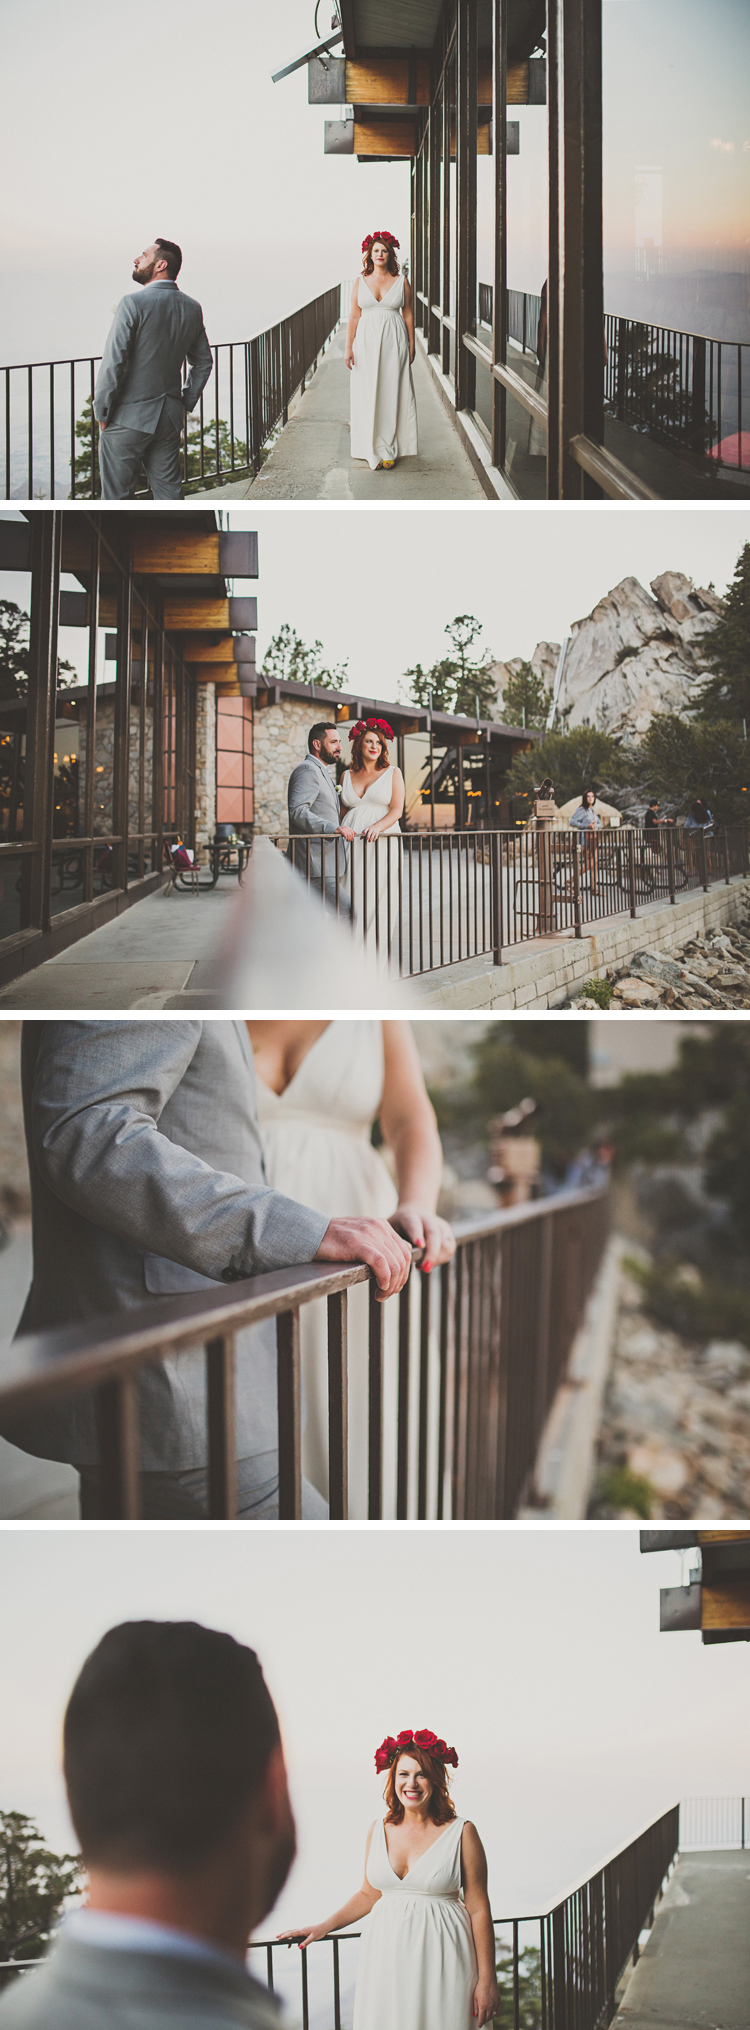 Palm SPrings Tram Wedding Photos